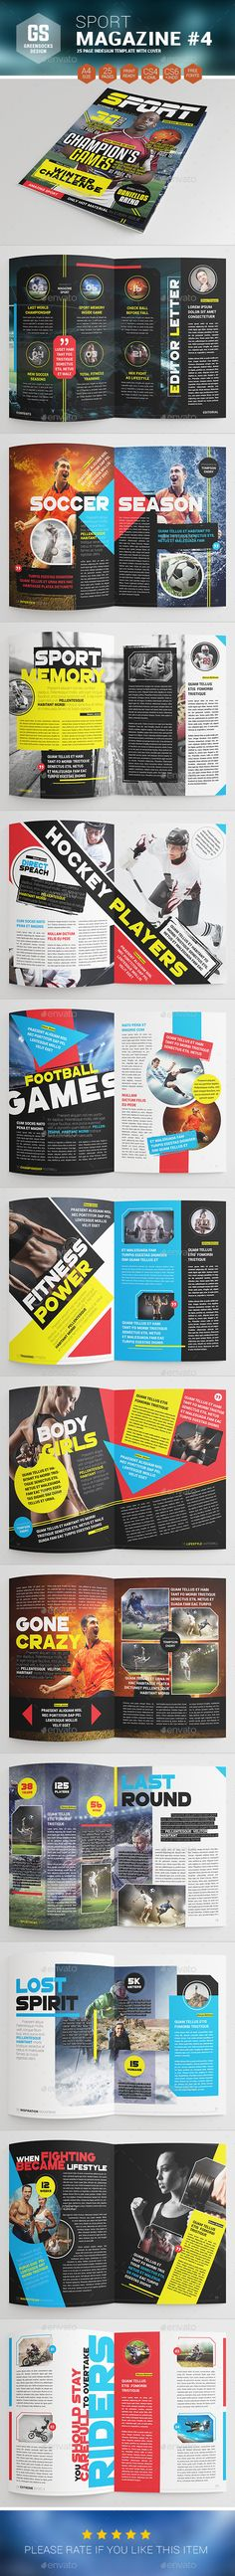 Sport Magazine Template Download: http://graphicriver.net/item/sport-magazine-4/9482475?ref=ksioks